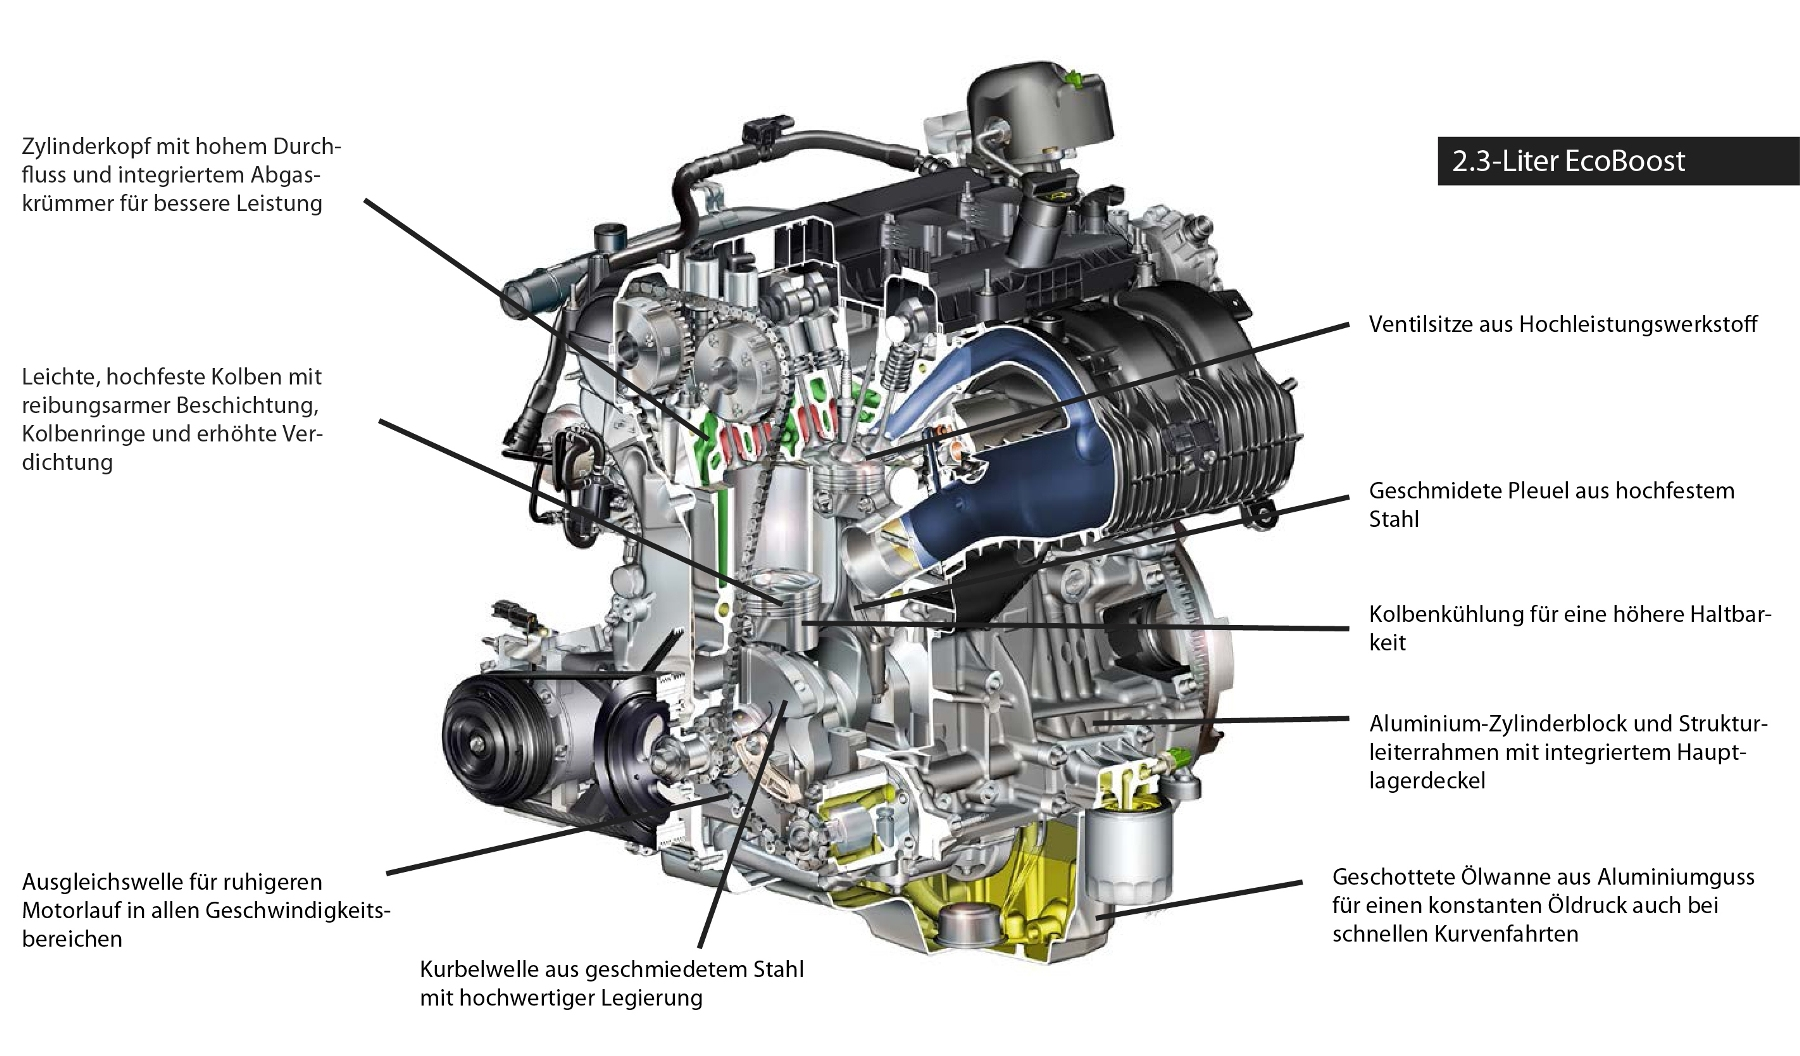 mustang_ecoboost_illustration_EU